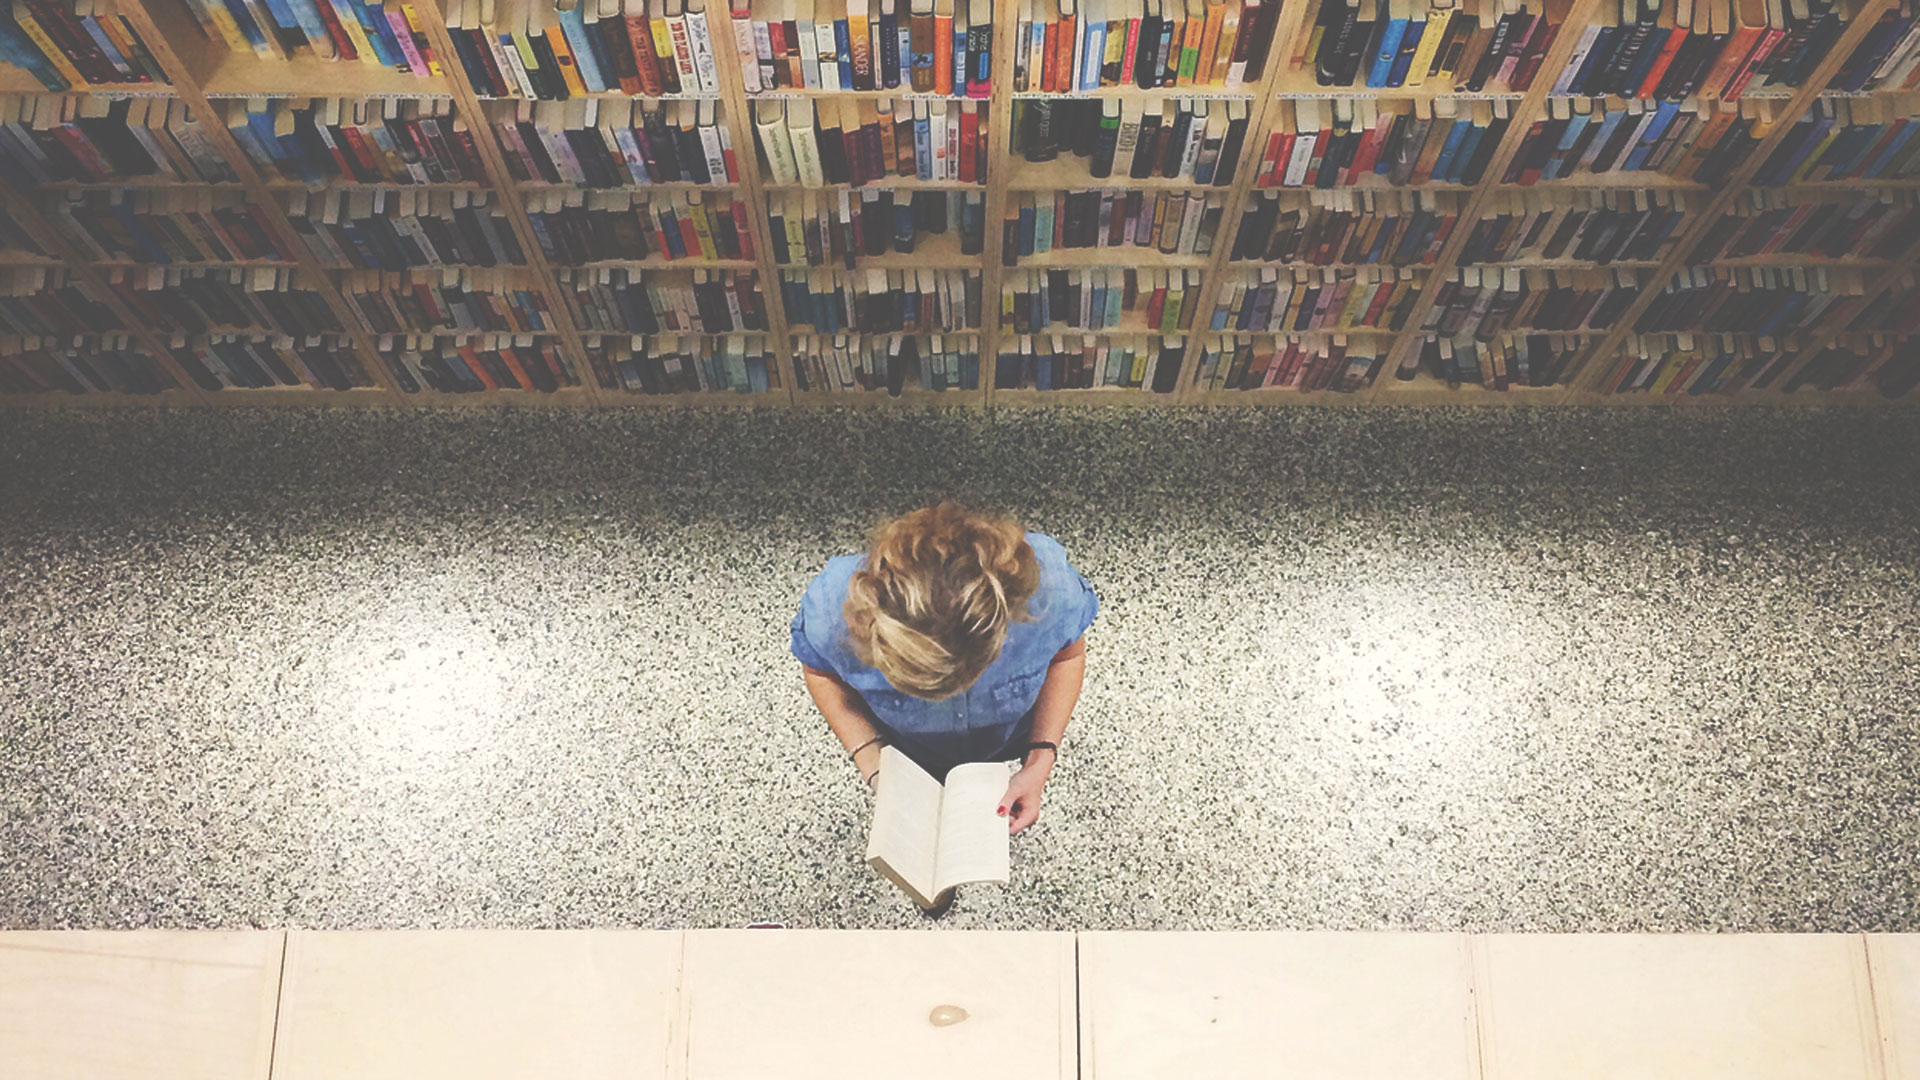 Woman reading book in college library